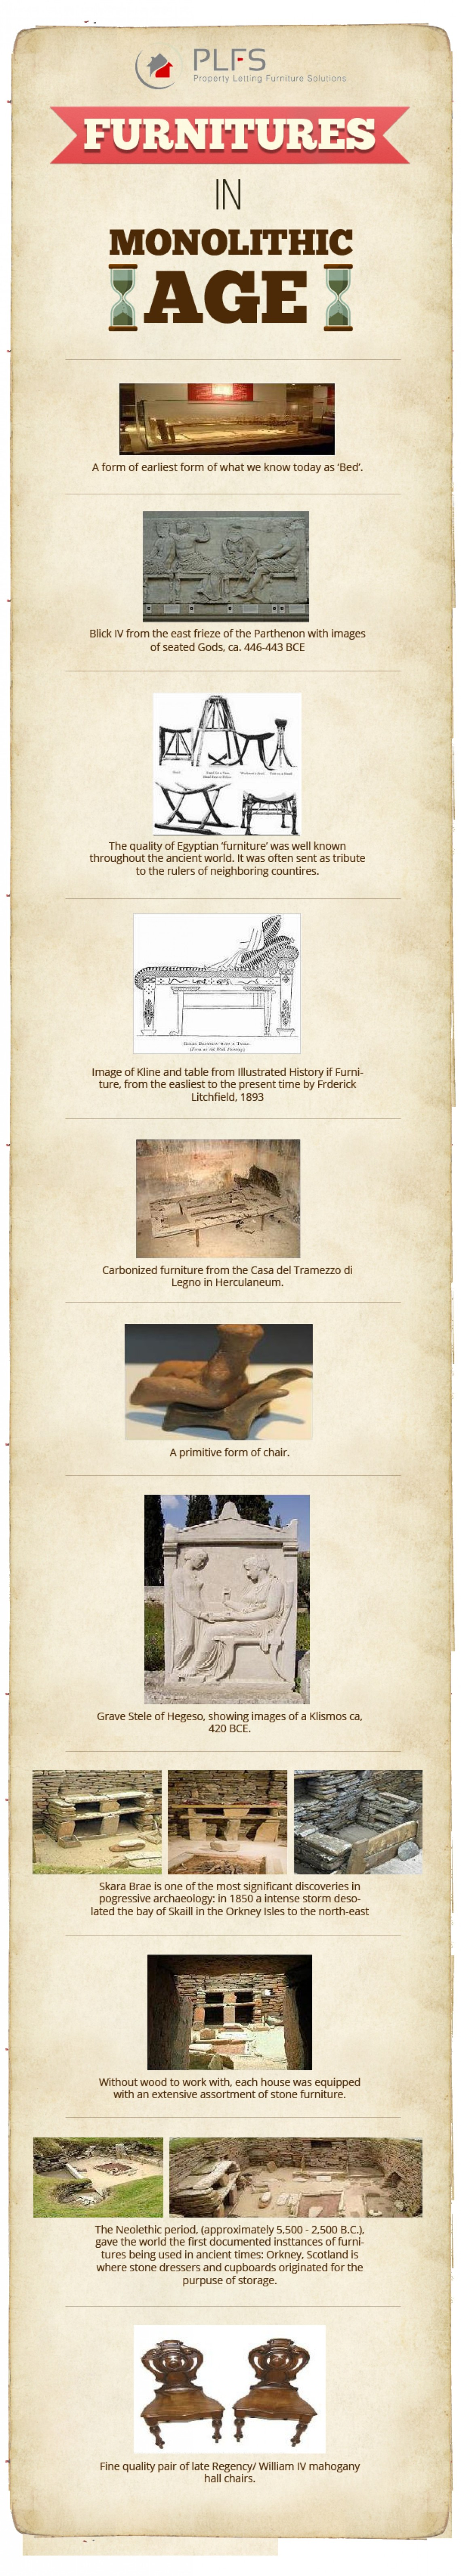 Furniture in Monolithic Age